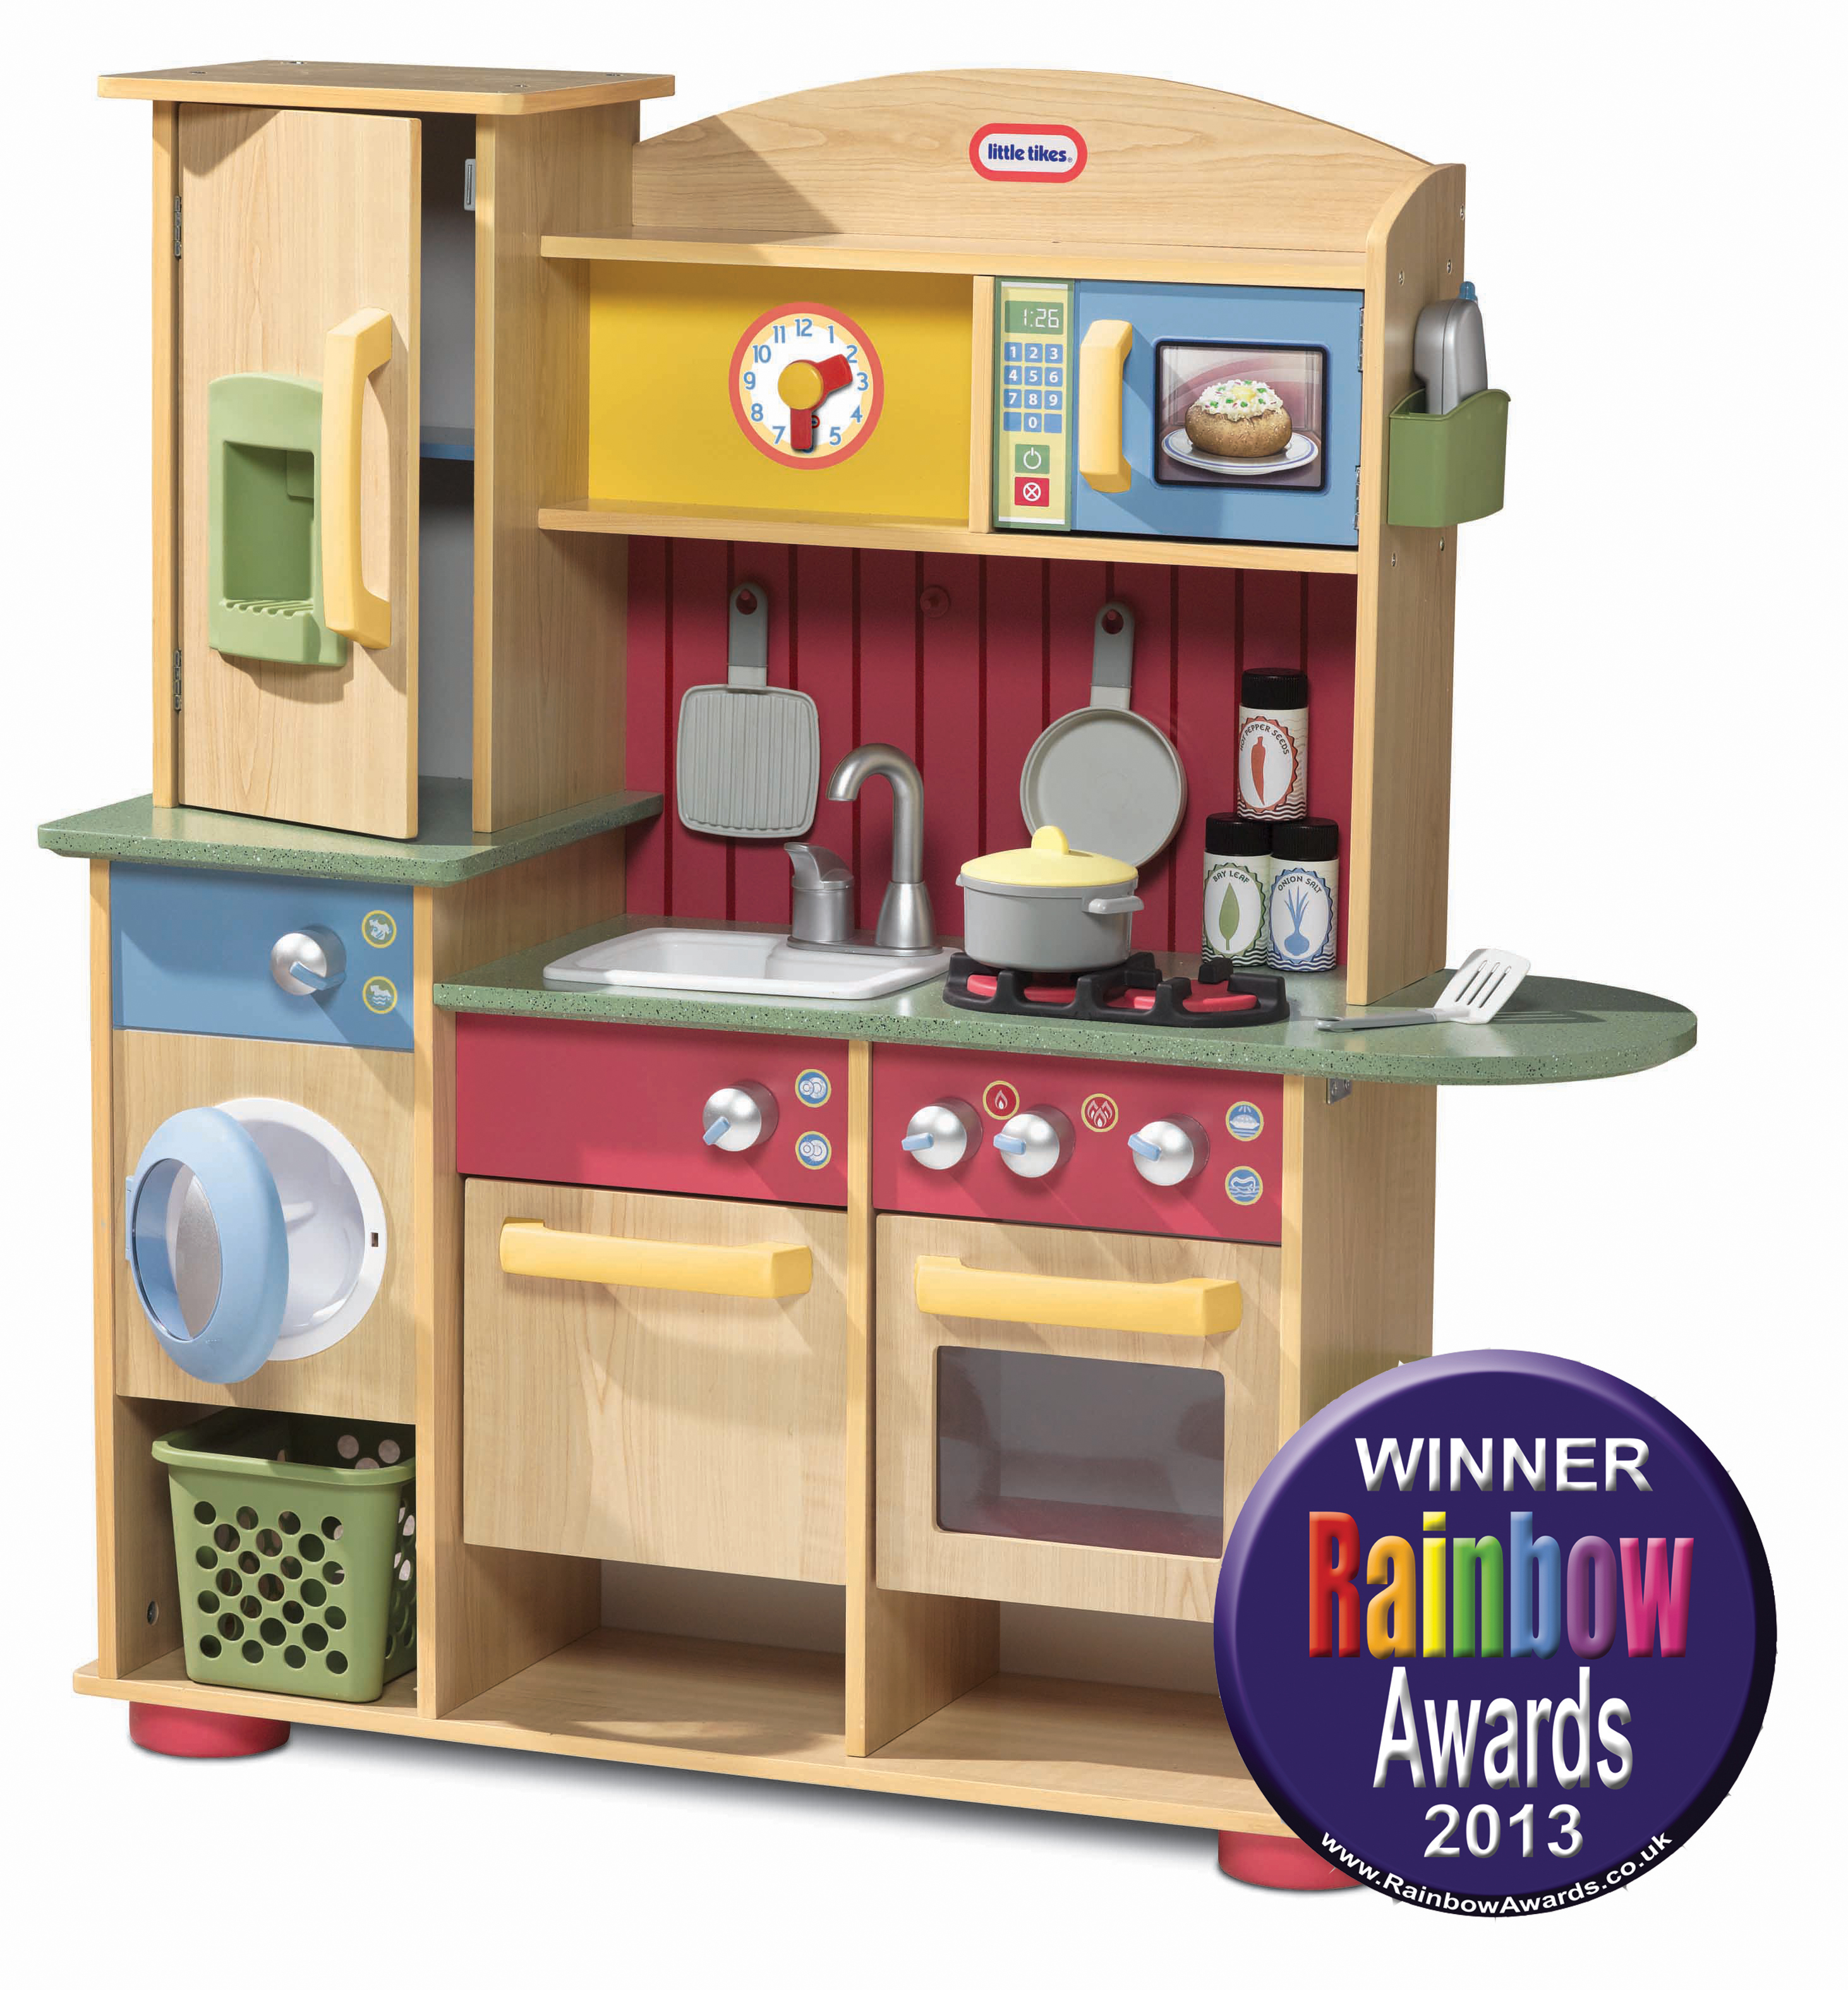 Little tikes cookin 39 creations wood kitchen in rainbow toy for Ikea child kitchen set